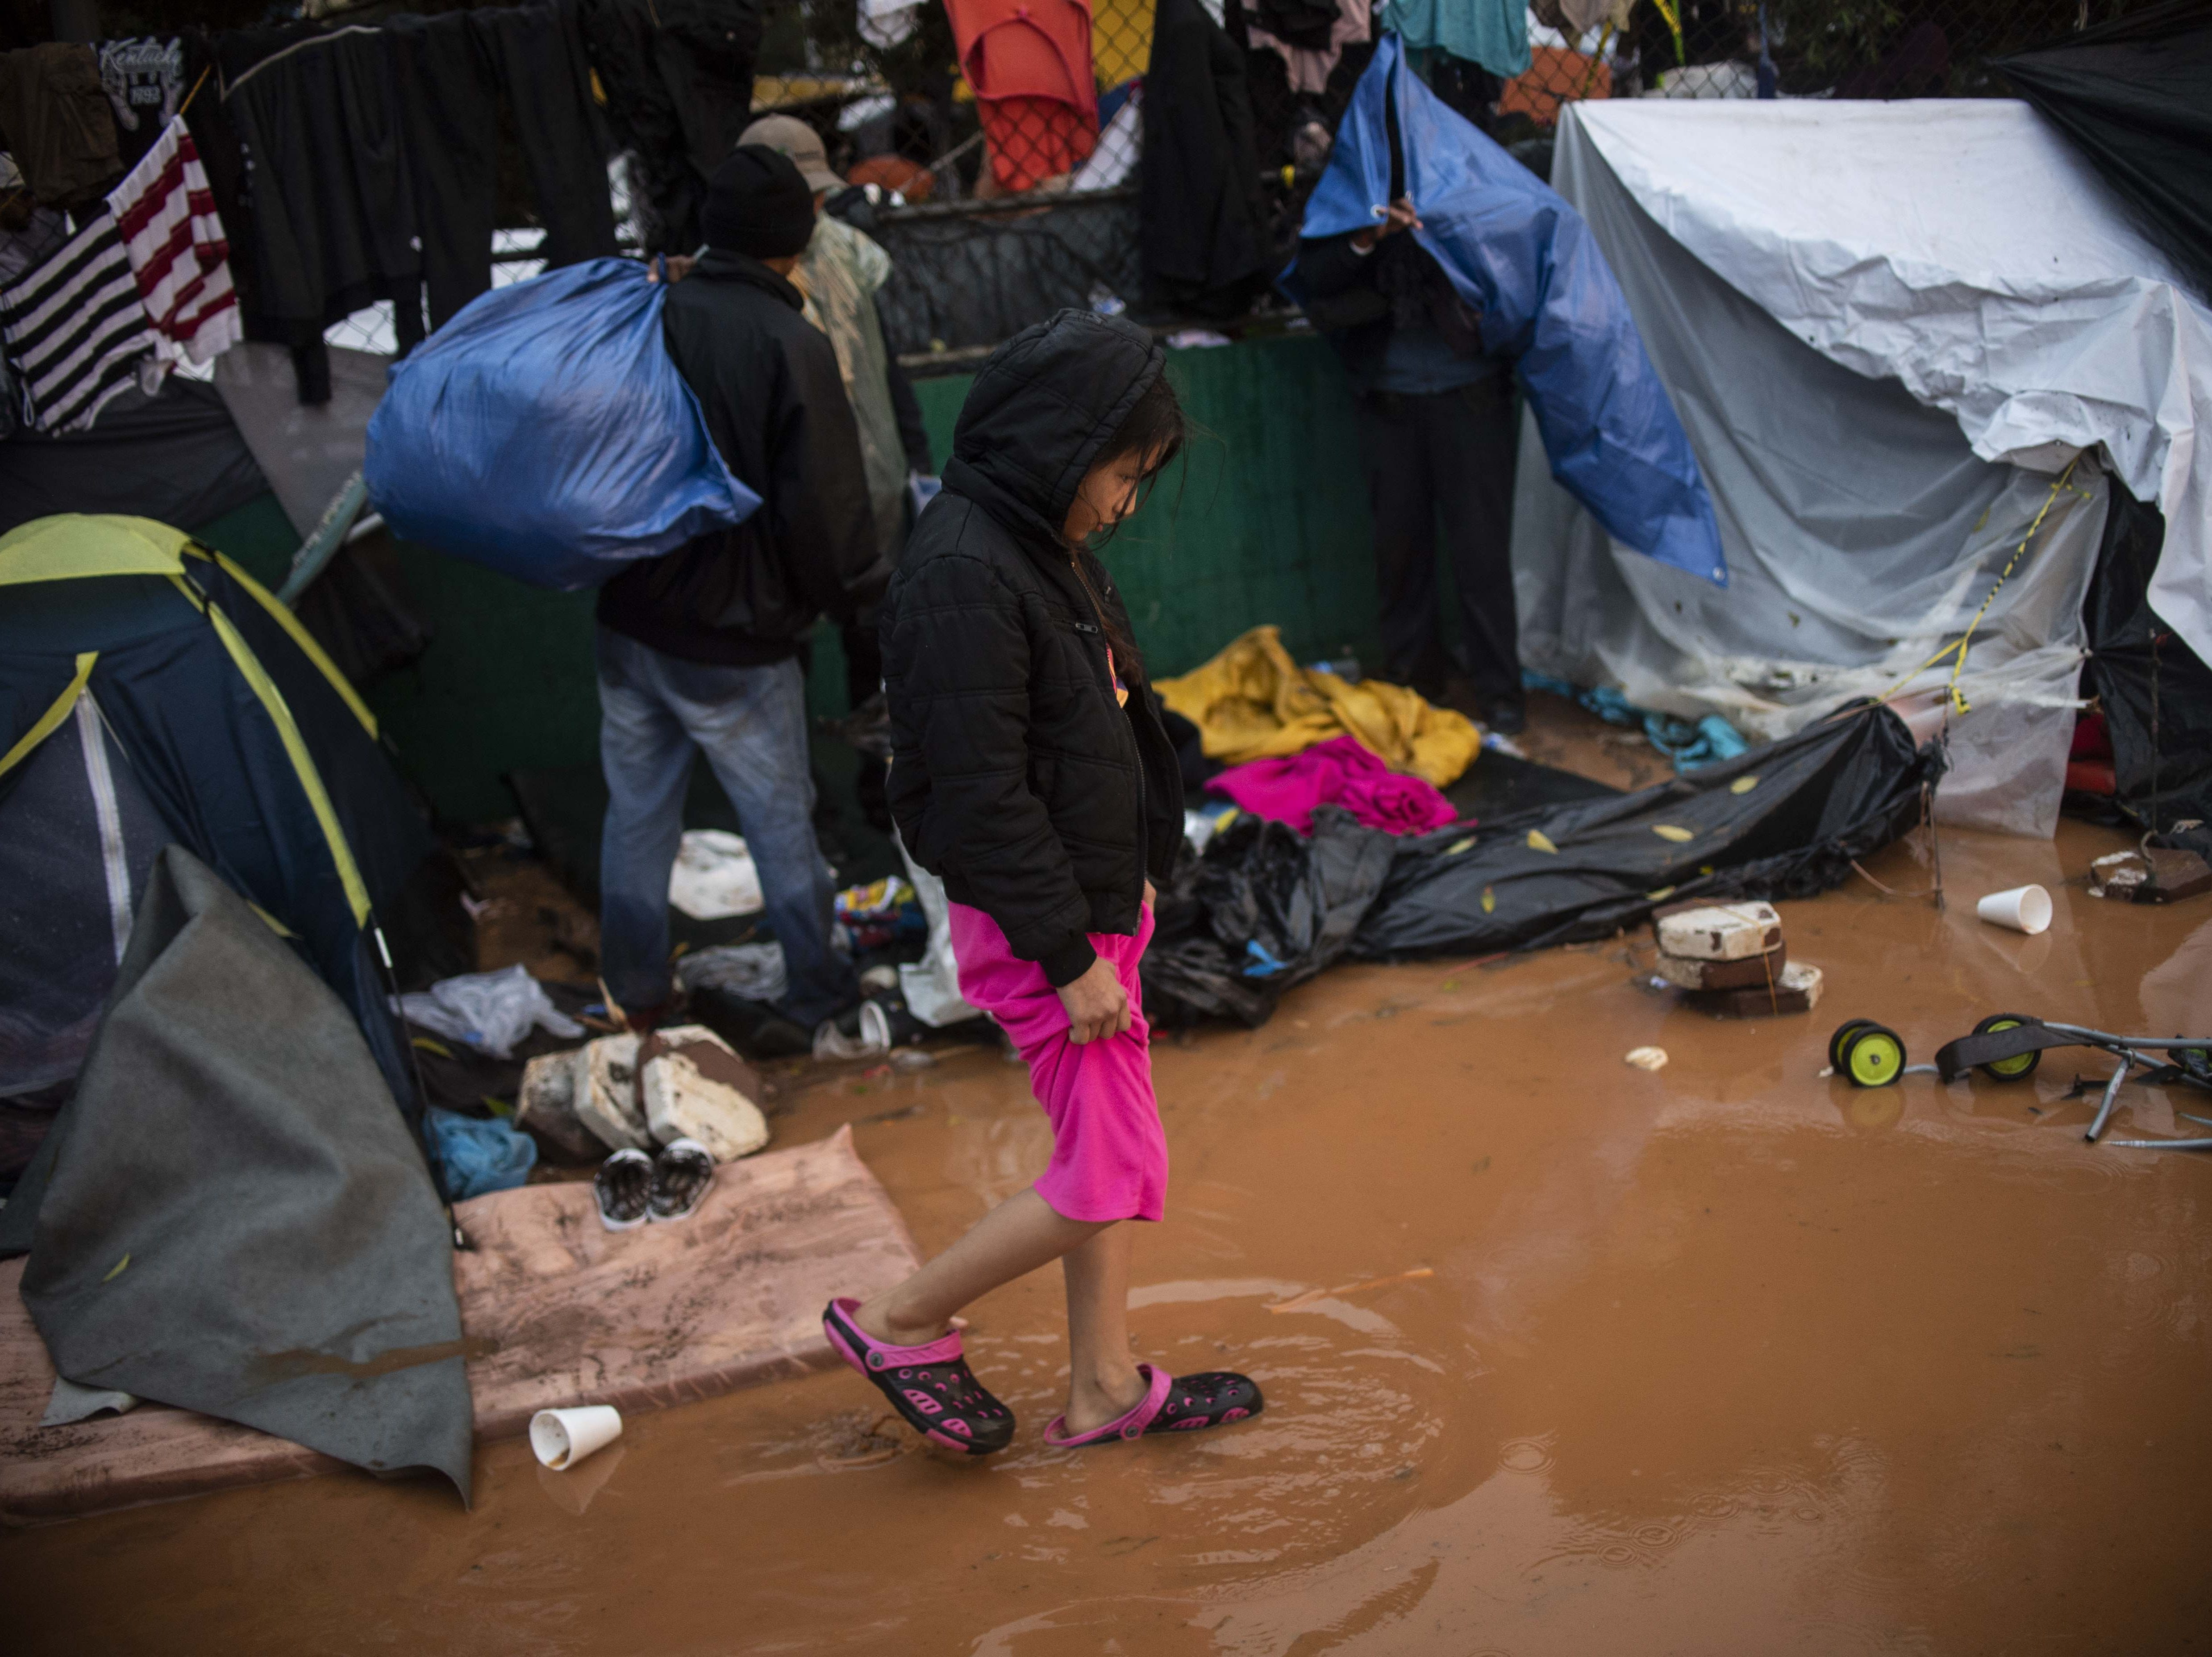 A girl who trekked for over a month across Central America and Mexico within a caravan of Central American migrants, mostly Hondurans, in the hopes of reaching the United States, walks in the water at the temporary shelter in Tijuana, Baja California State, Mexico, near the border with the US, after heavy rain on November 29, 2018. - Members of the Central American migrant caravan are starting to lose hope, and in some cases are turning back after more than a month's trek. Their surprise bid to rush the border en masse on Sunday ended as abruptly as it began, when US Border Patrol agents fired tear gas and rubber bullets to force them back.